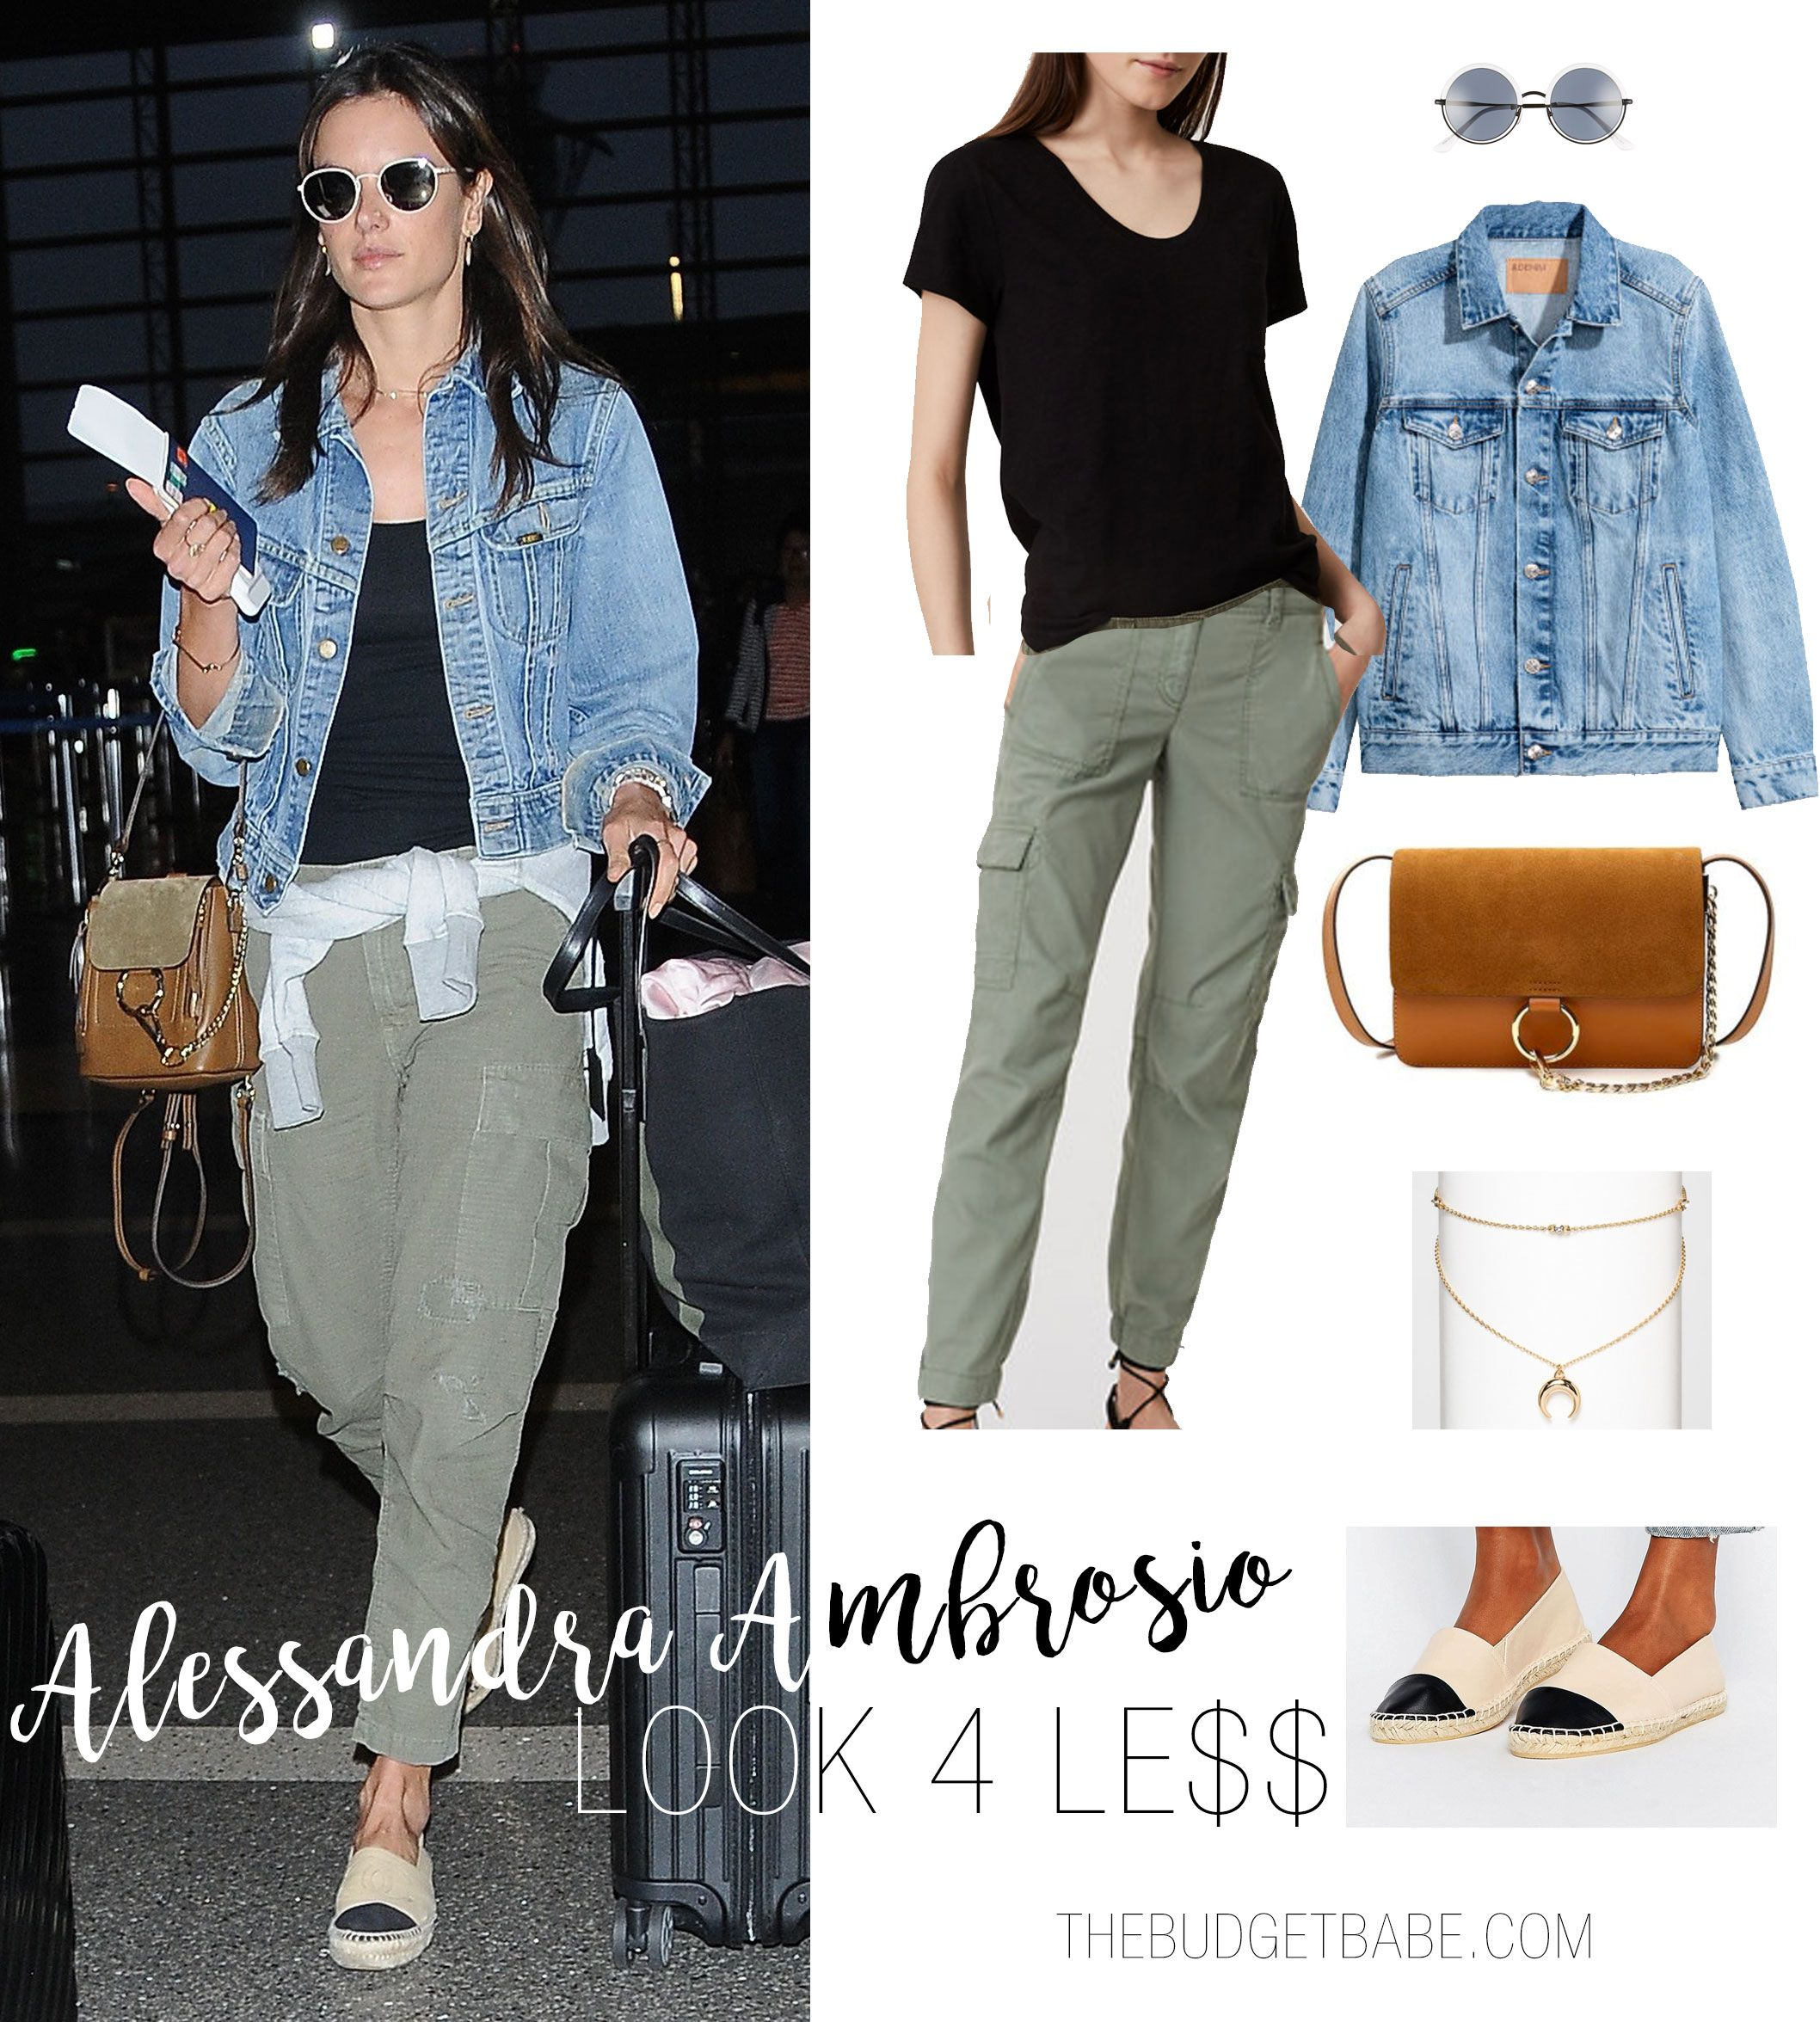 Alessandra Ambrosio S Casual Airport Style Outfit Look For Less Cargo Pants And Denim Jacket With Ca Winter Travel Outfit Travel Outfit Summer Winter Outfits